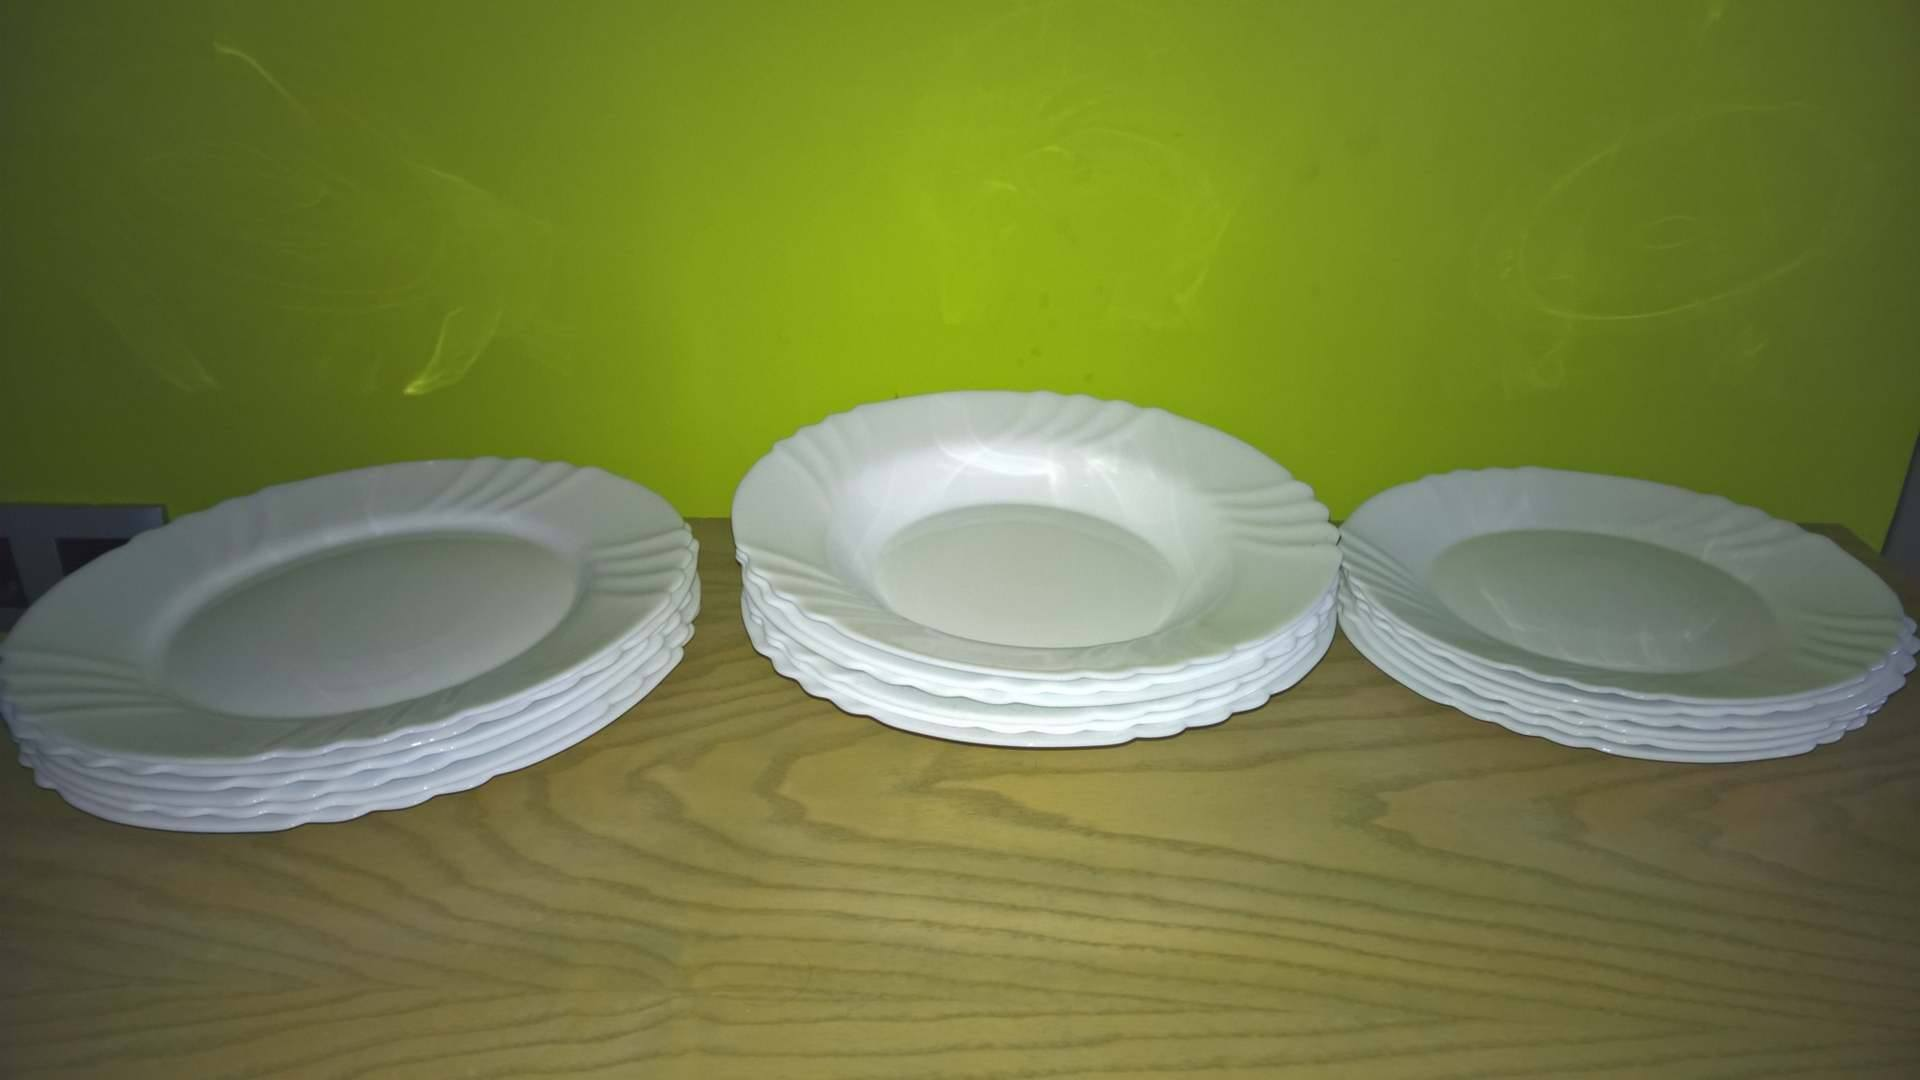 For sale: 3 sets of plates 15€